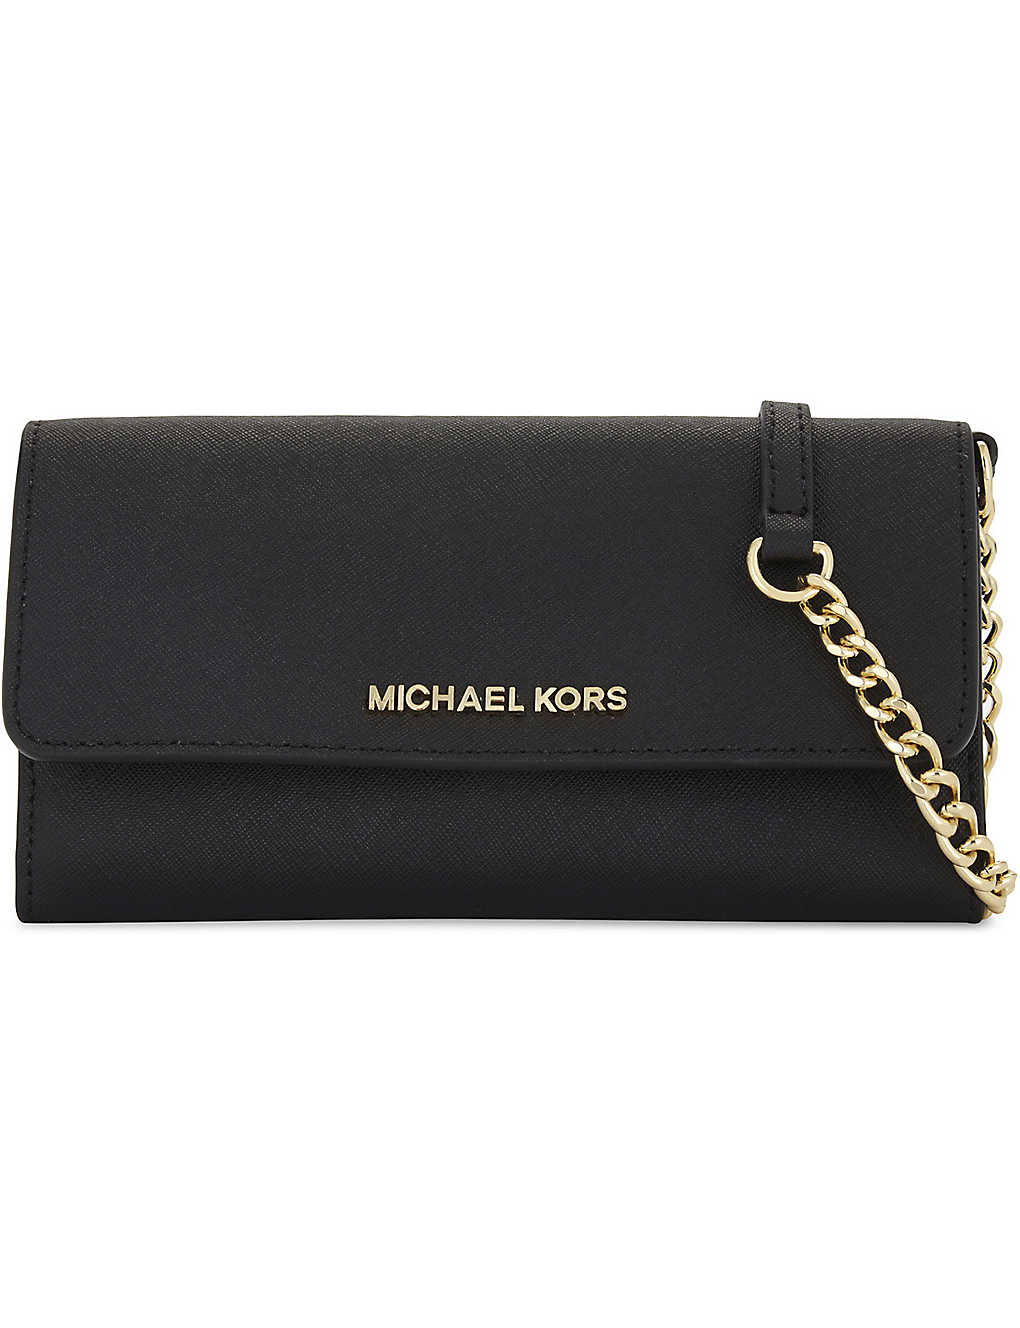 4e1f8adee1c9a4 MICHAEL MICHAEL KORS - Jet Set Travel wallet on a chain | Selfridges.com